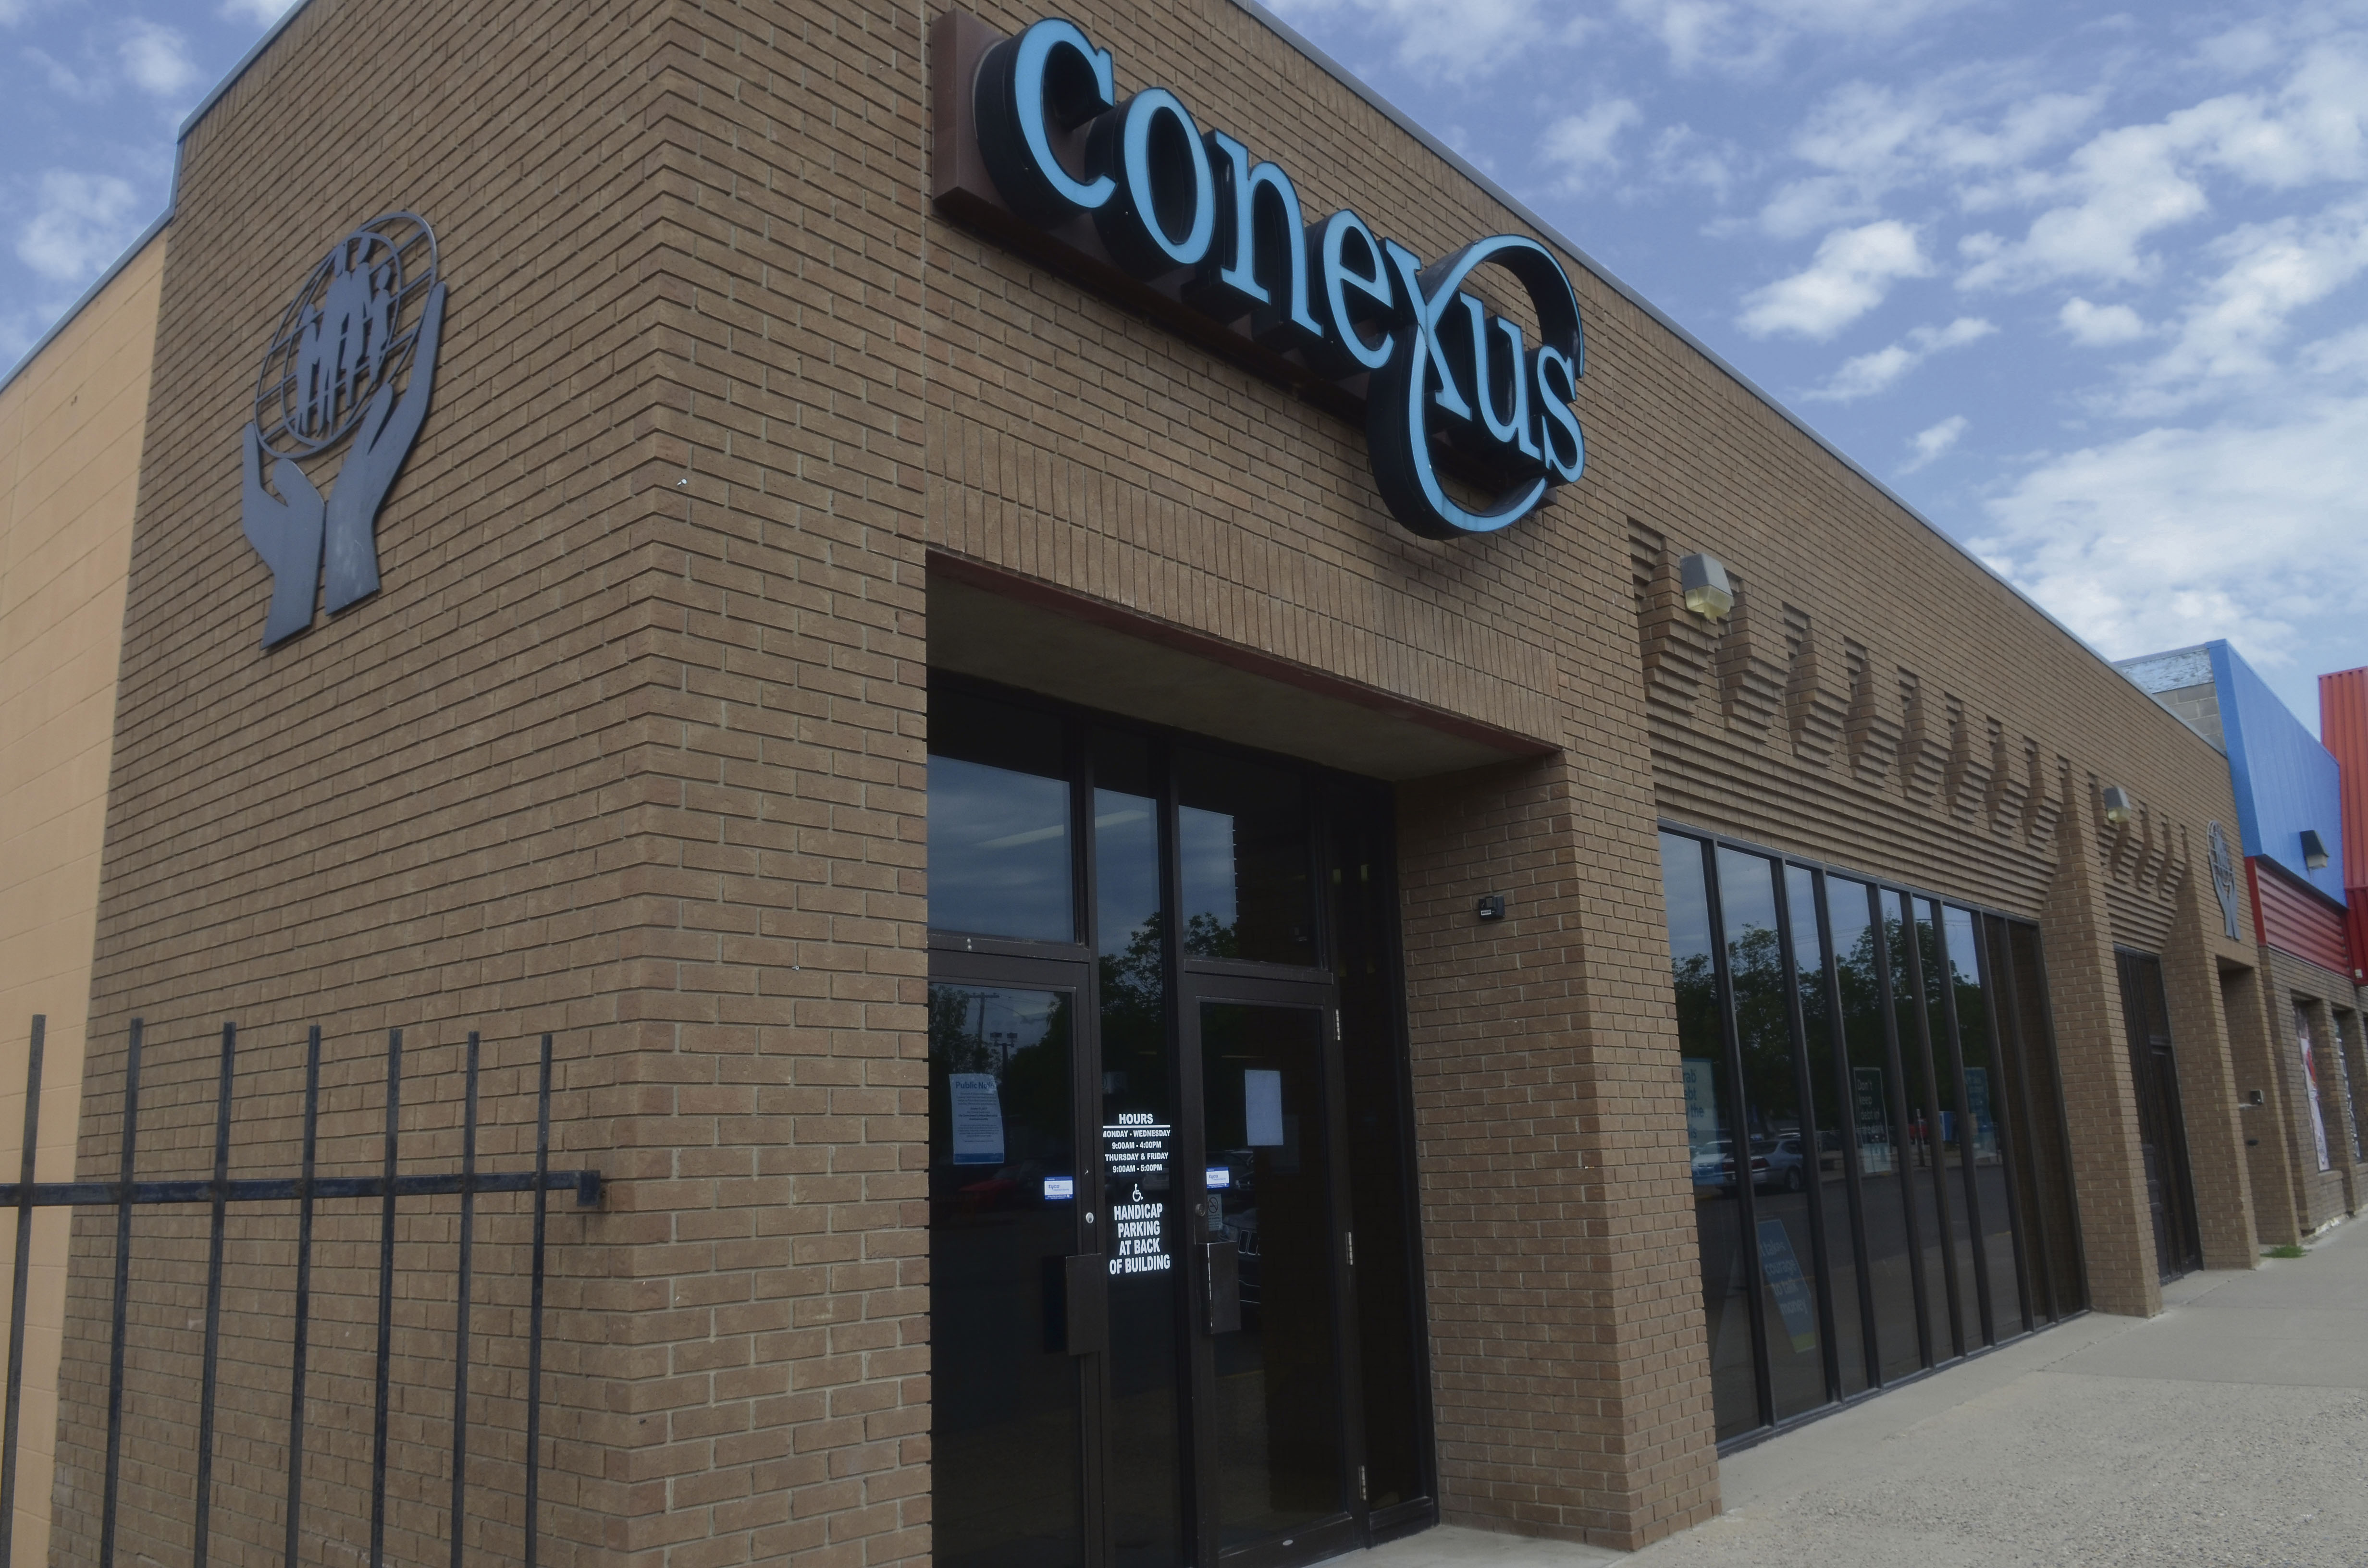 Downtown Conexus branch to close - Prince Albert Daily Herald